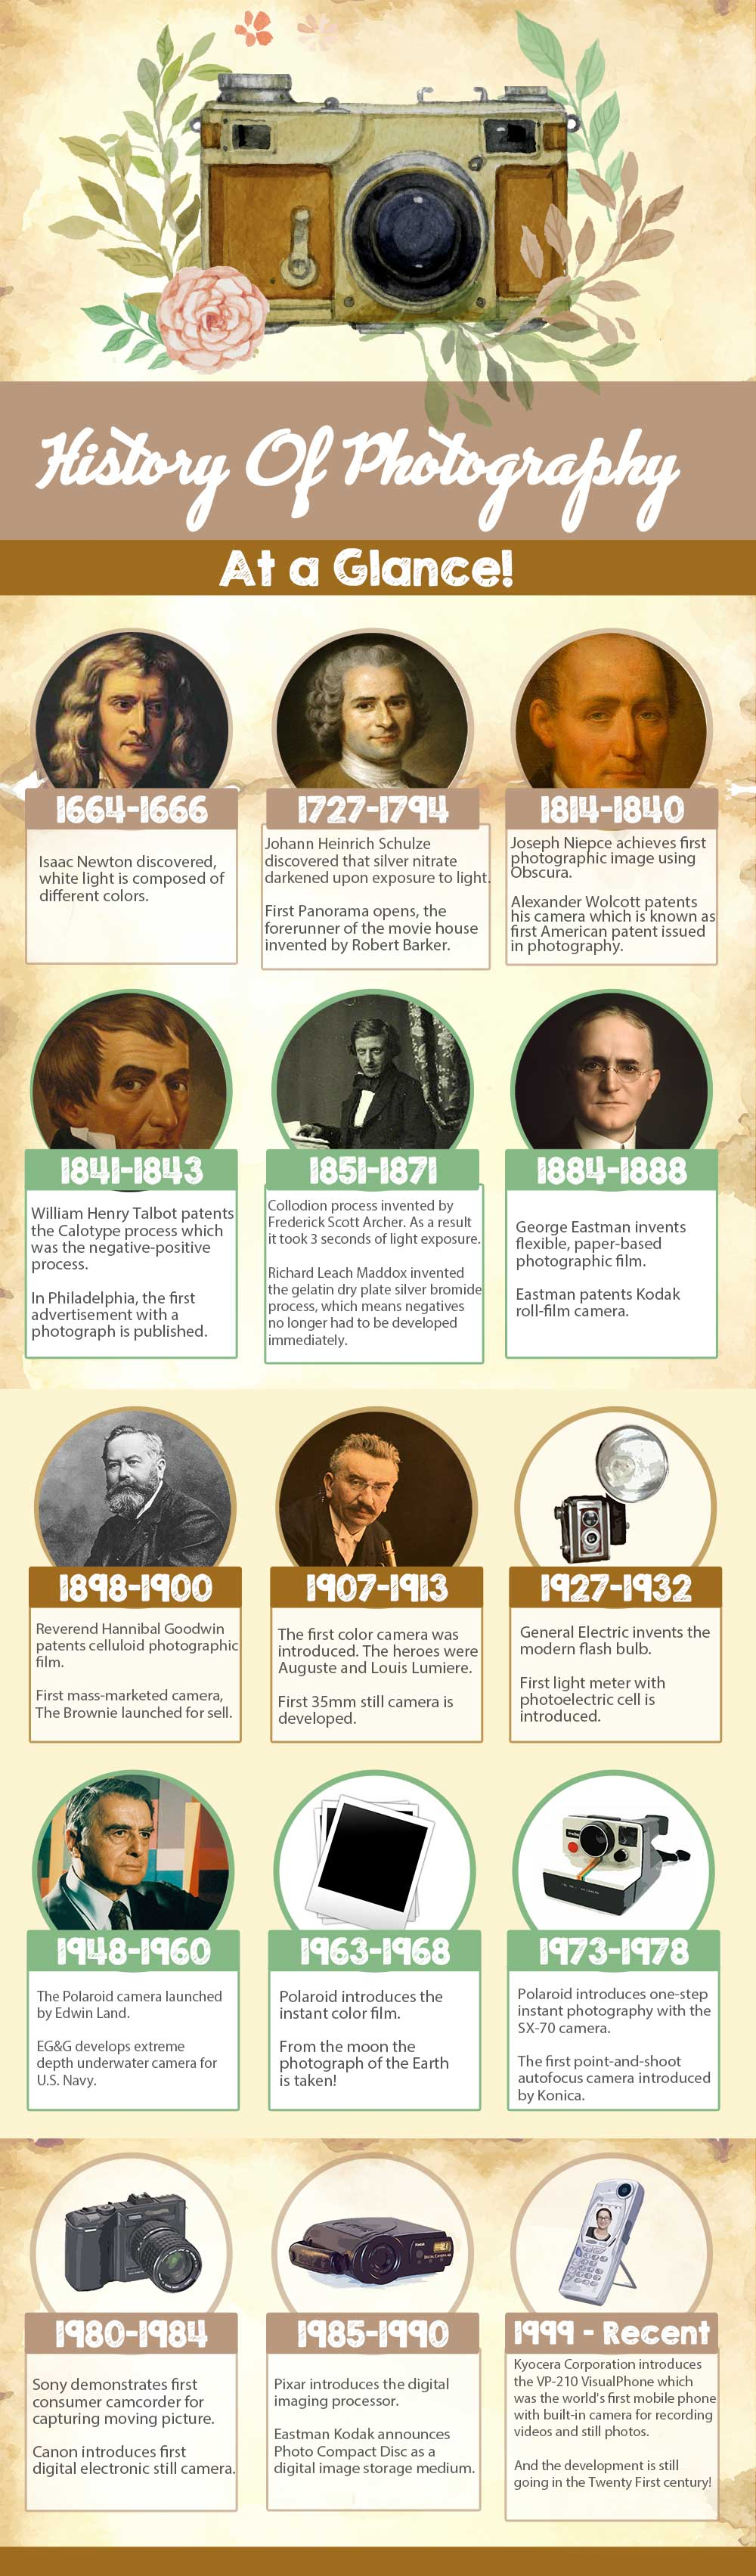 History-Of-Photography-Timeline